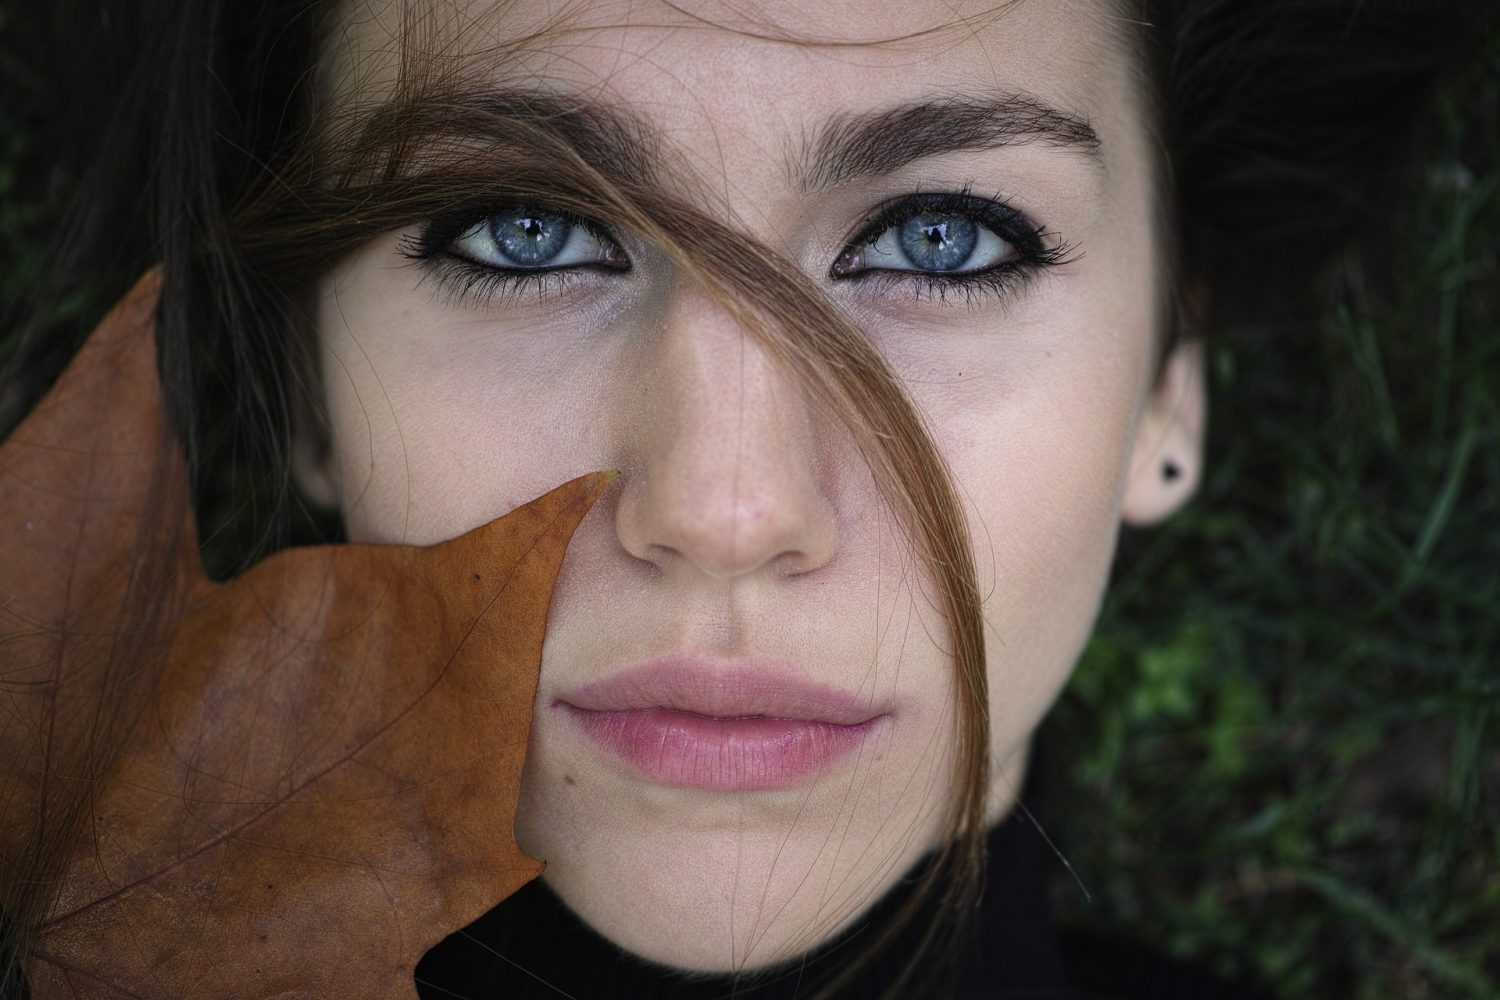 How to reduce puffiness around the eye